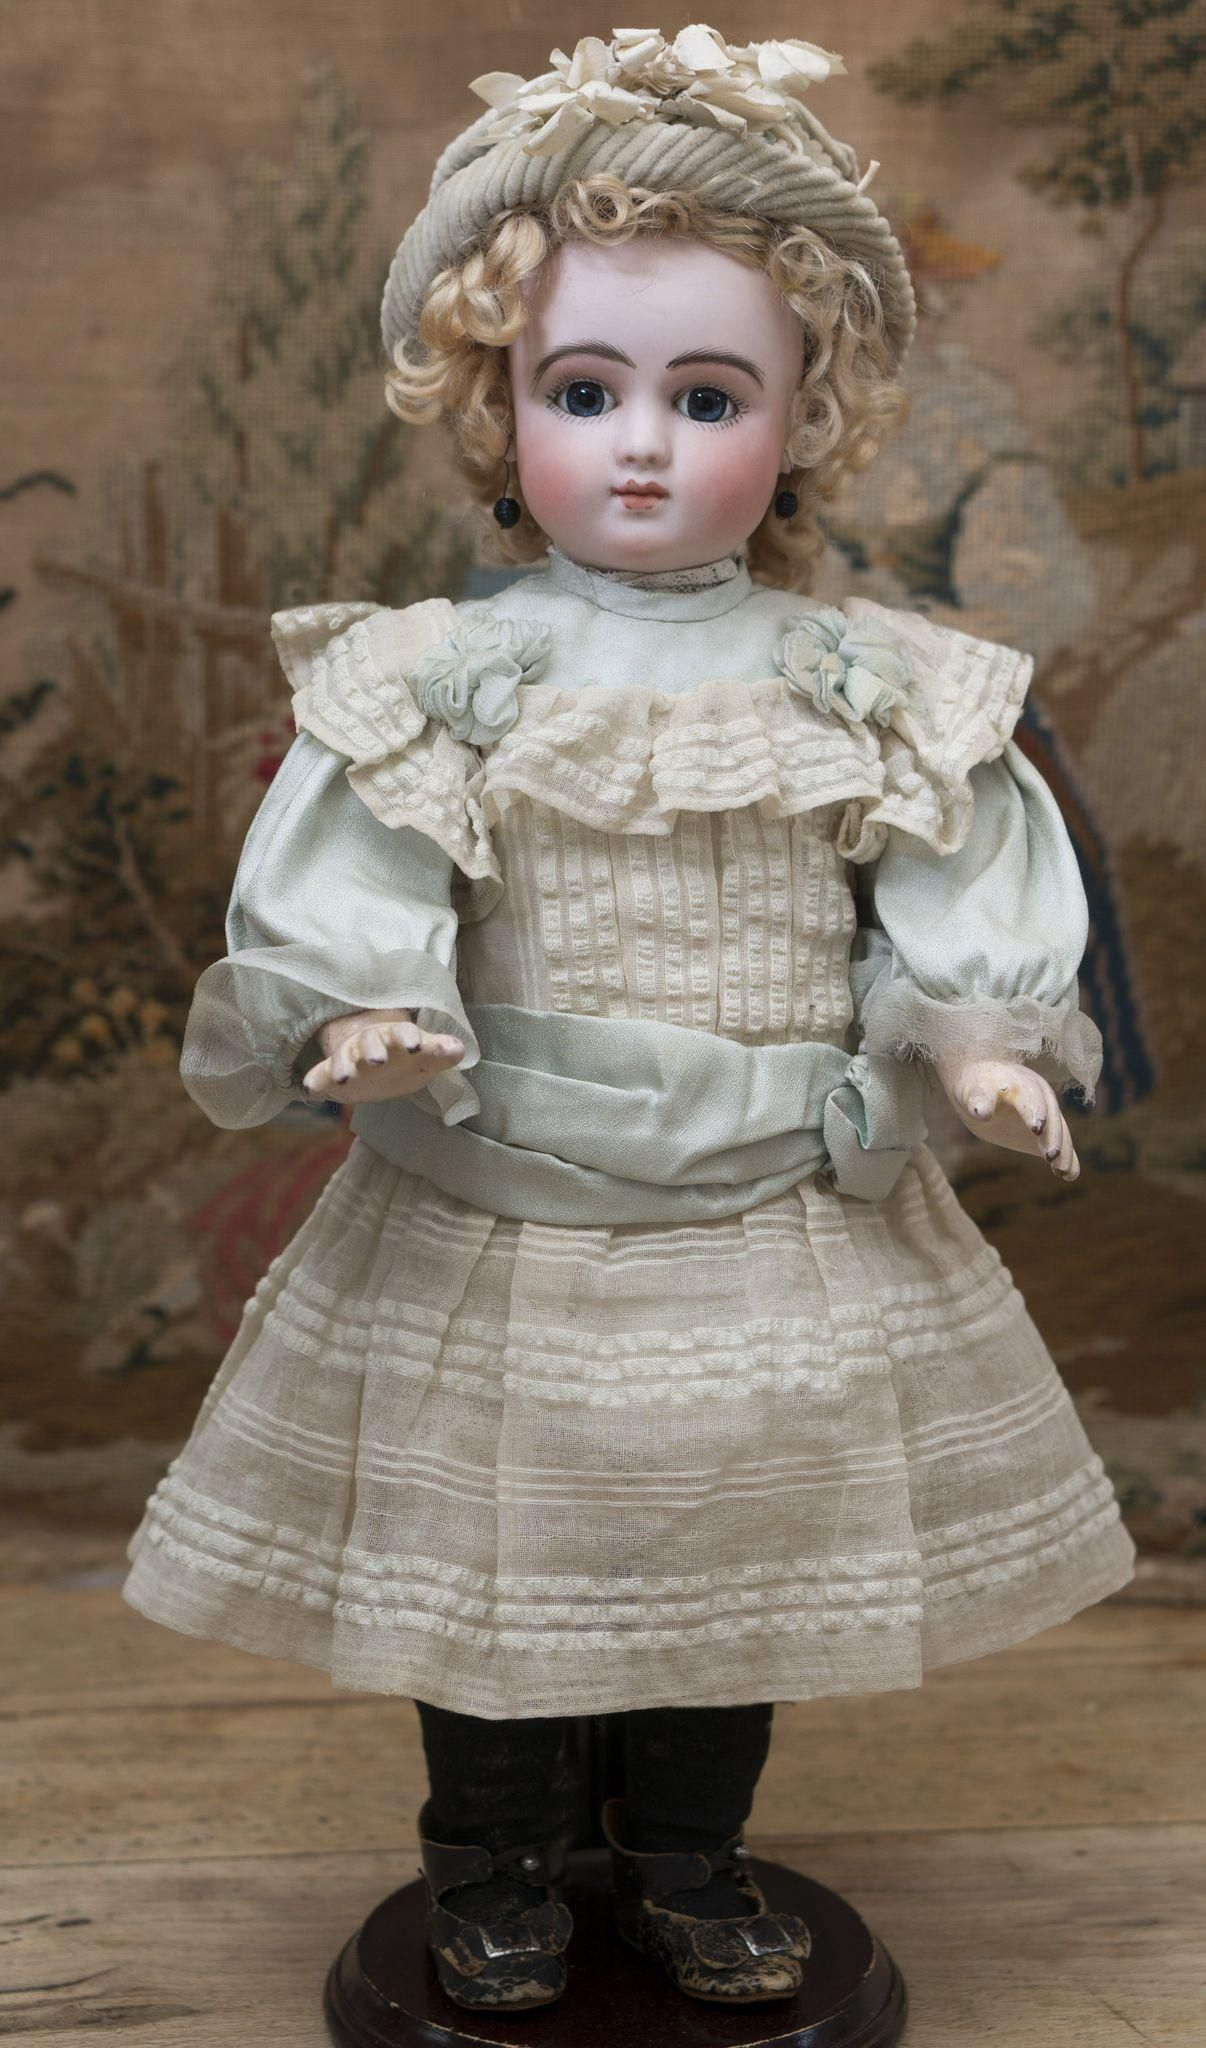 "16"" (41 cm) Antique All Original Rare French Bisque Bebe Doll Series C by Jules Steiner, closed mouth, early model Bourgoin with original deposed Steiner eye mechanism. A LAYAWAY!"